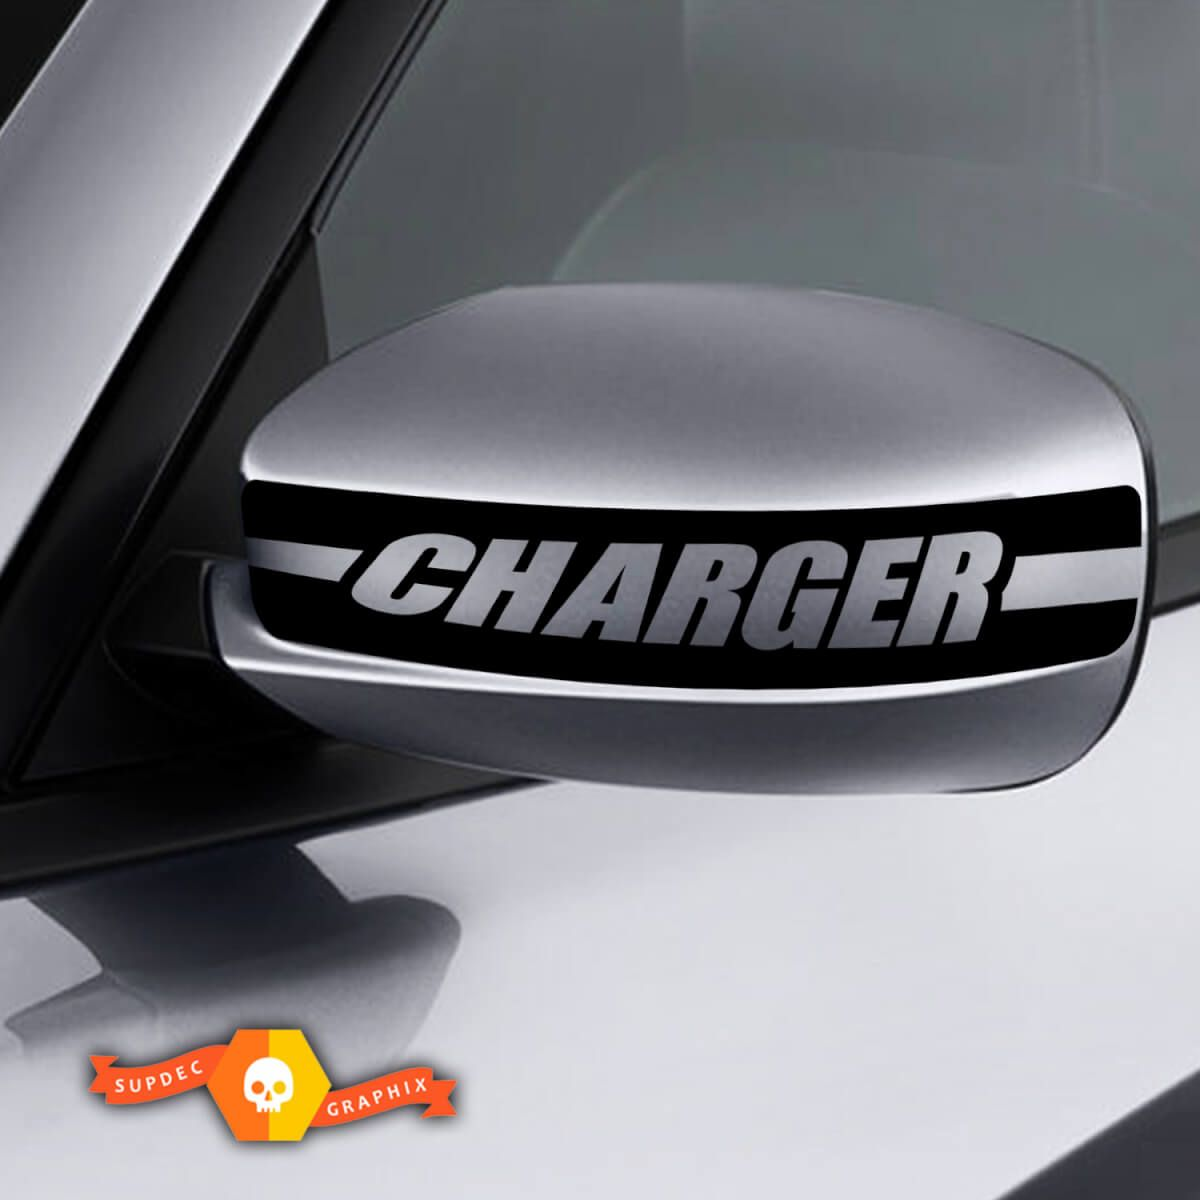 Dodge Charger Mirror Decal Sticker Charger Retro Graphics Fits To Models 2011 2016 Car Decals Vinyl Mirror Decal Dodge Charger [ 1200 x 1200 Pixel ]